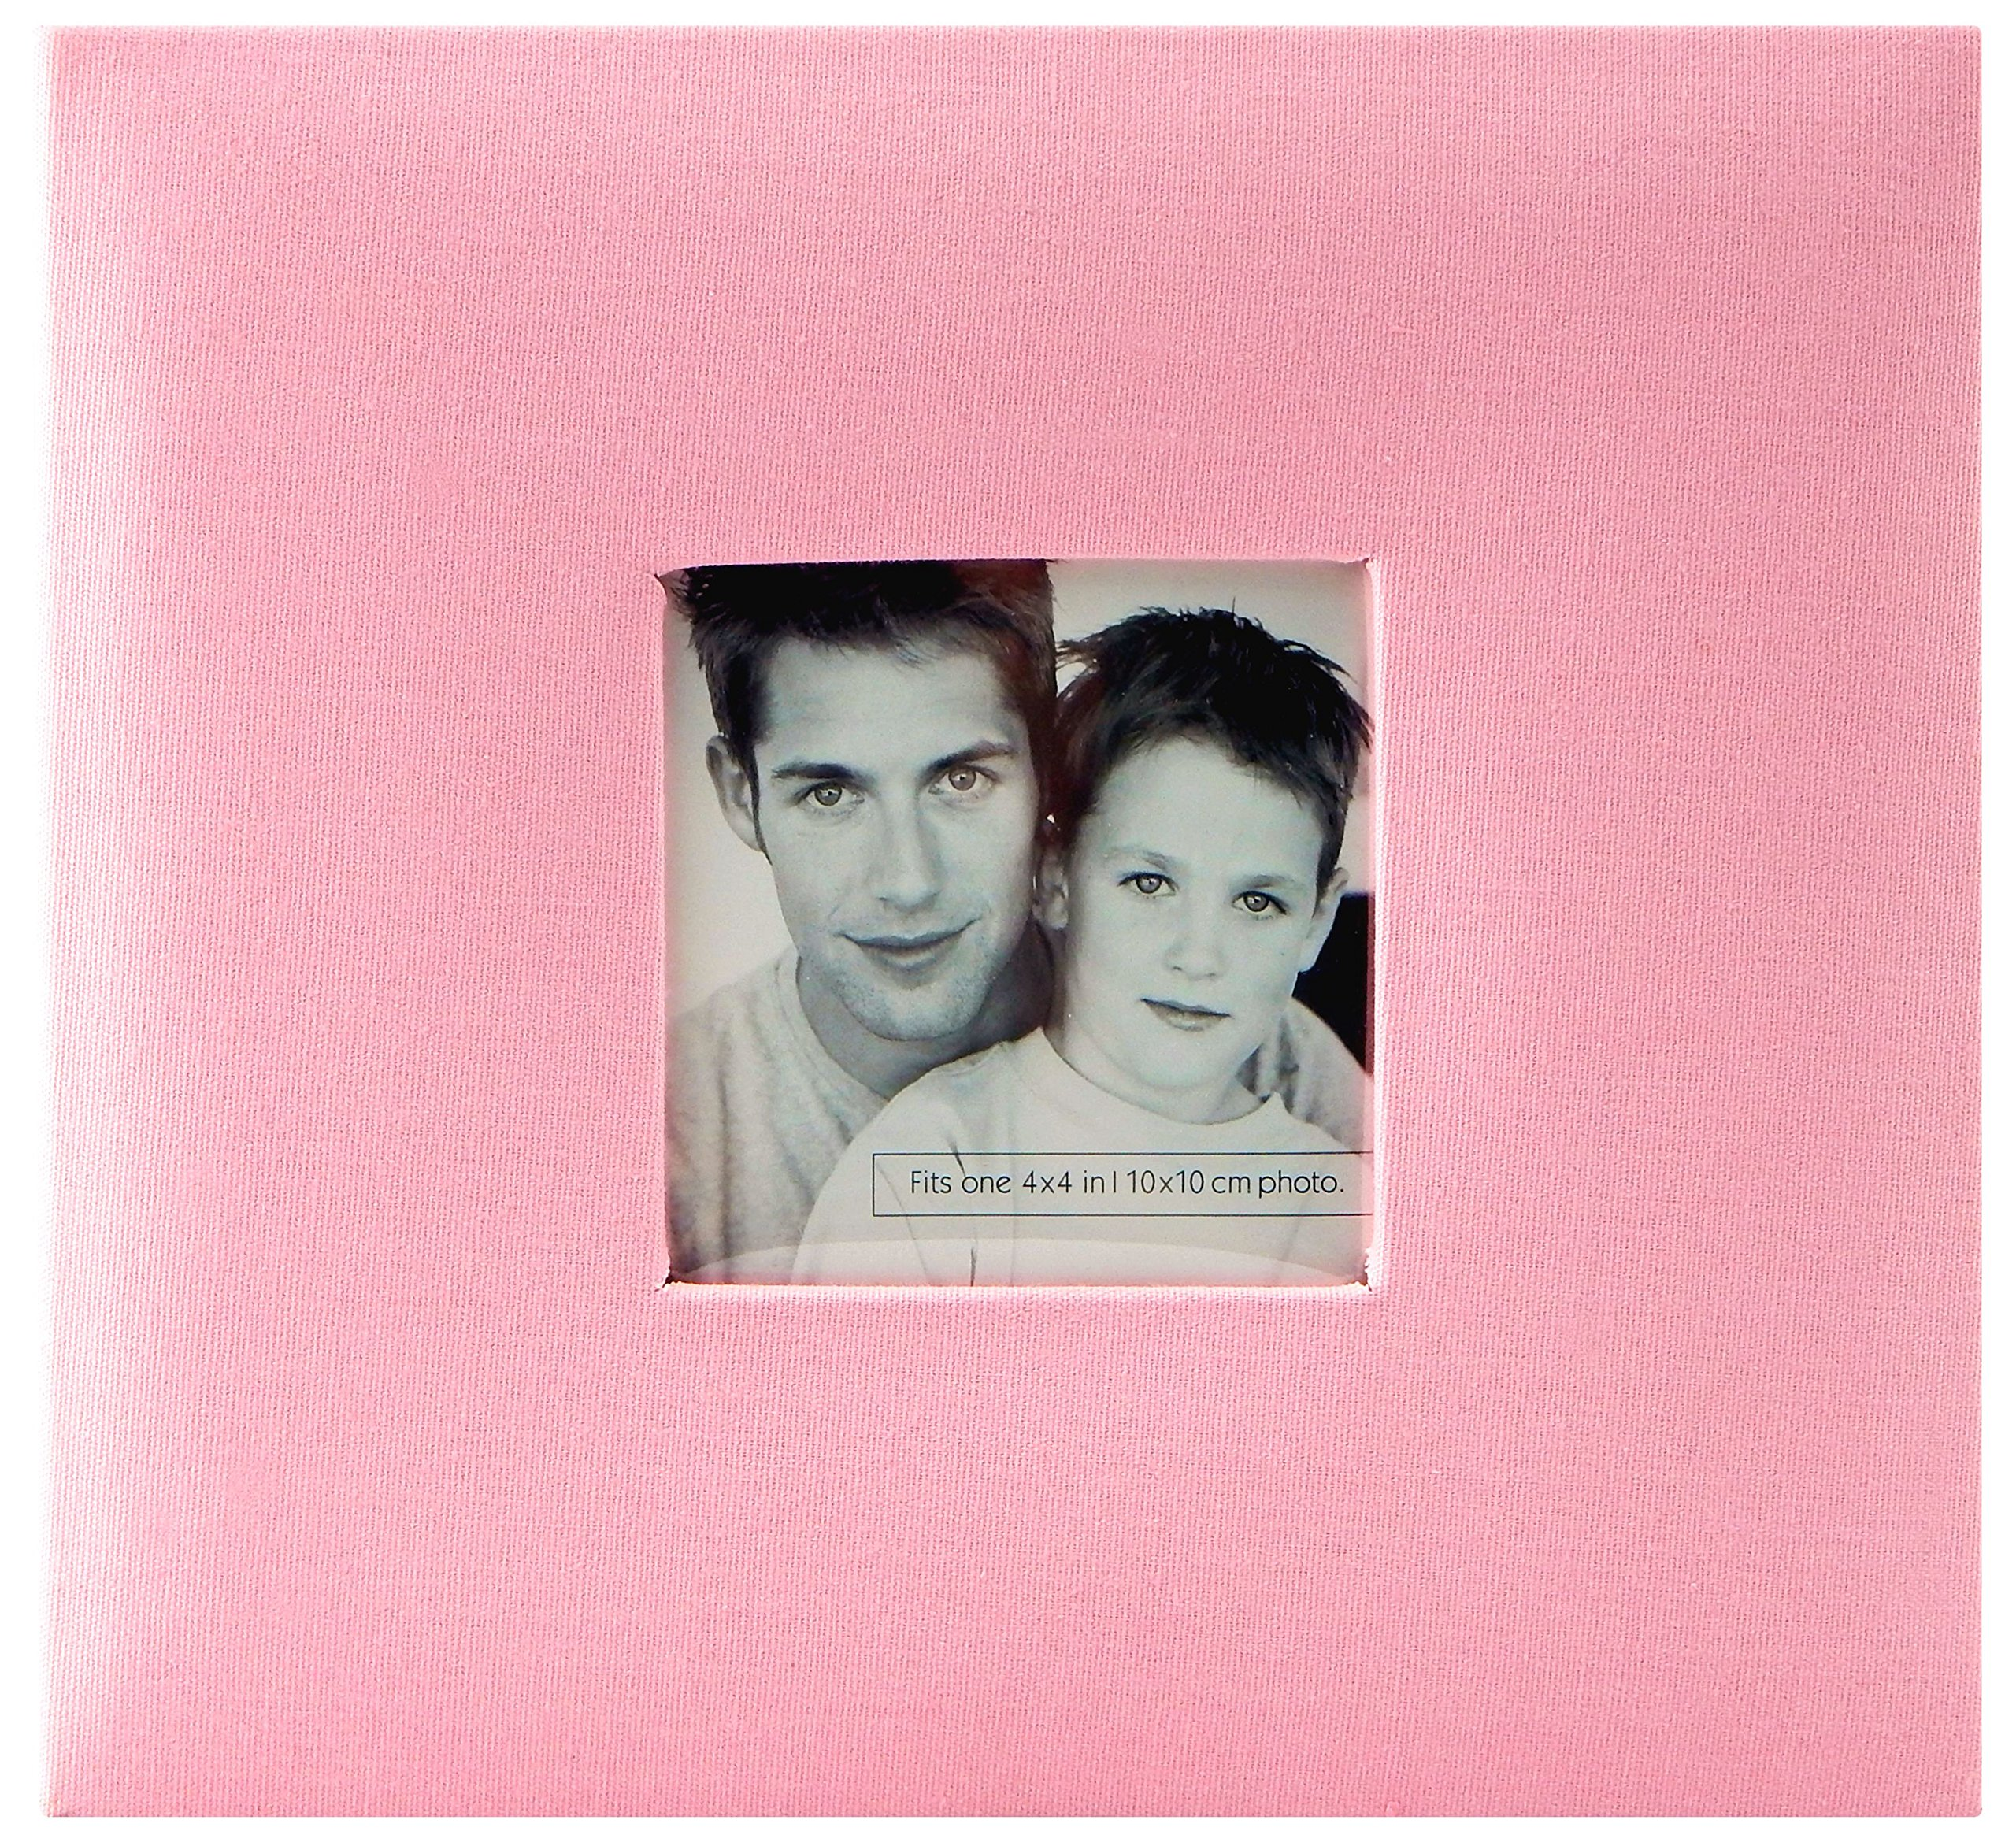 MCS MBI 9.6x8.5 Inch Fashion Fabric Scrapbook Album with 8x8 Inch Pages with Photo Opening, Pink (802815)